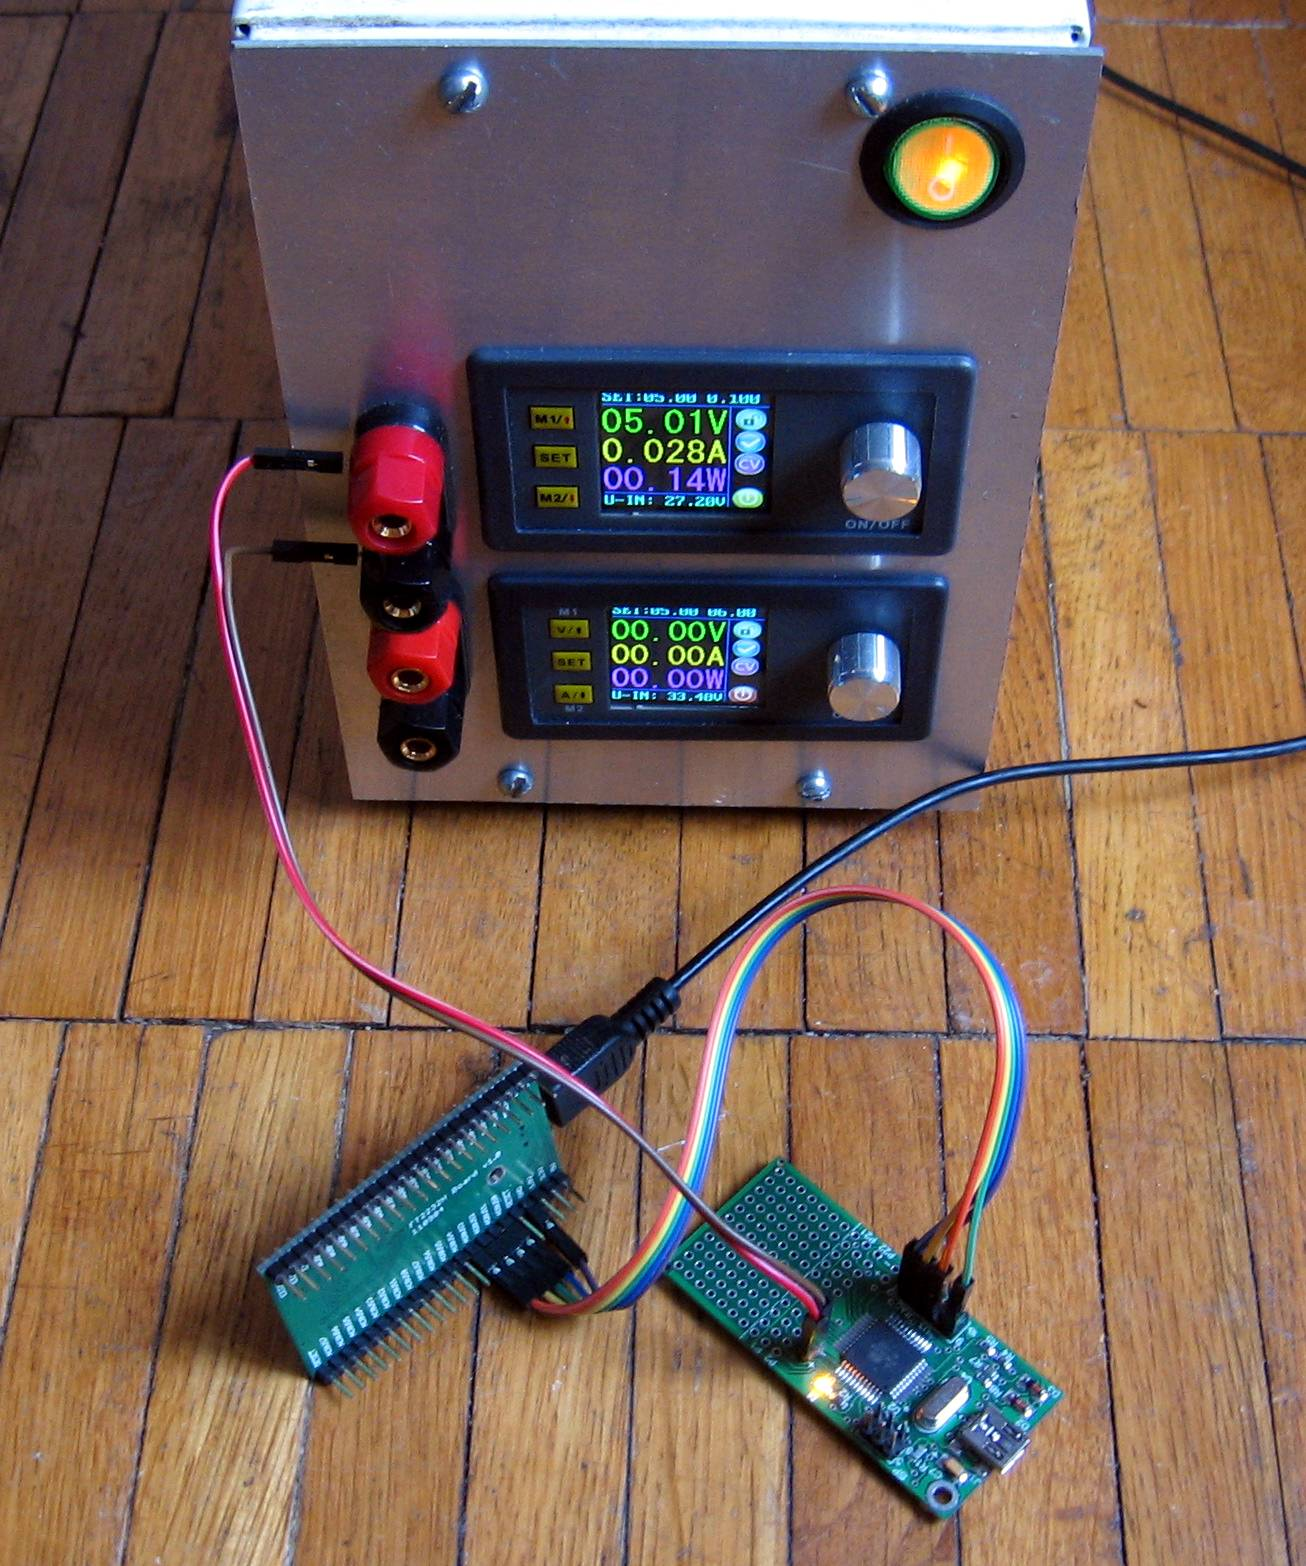 UrJTAG with AVR USB MEGA16